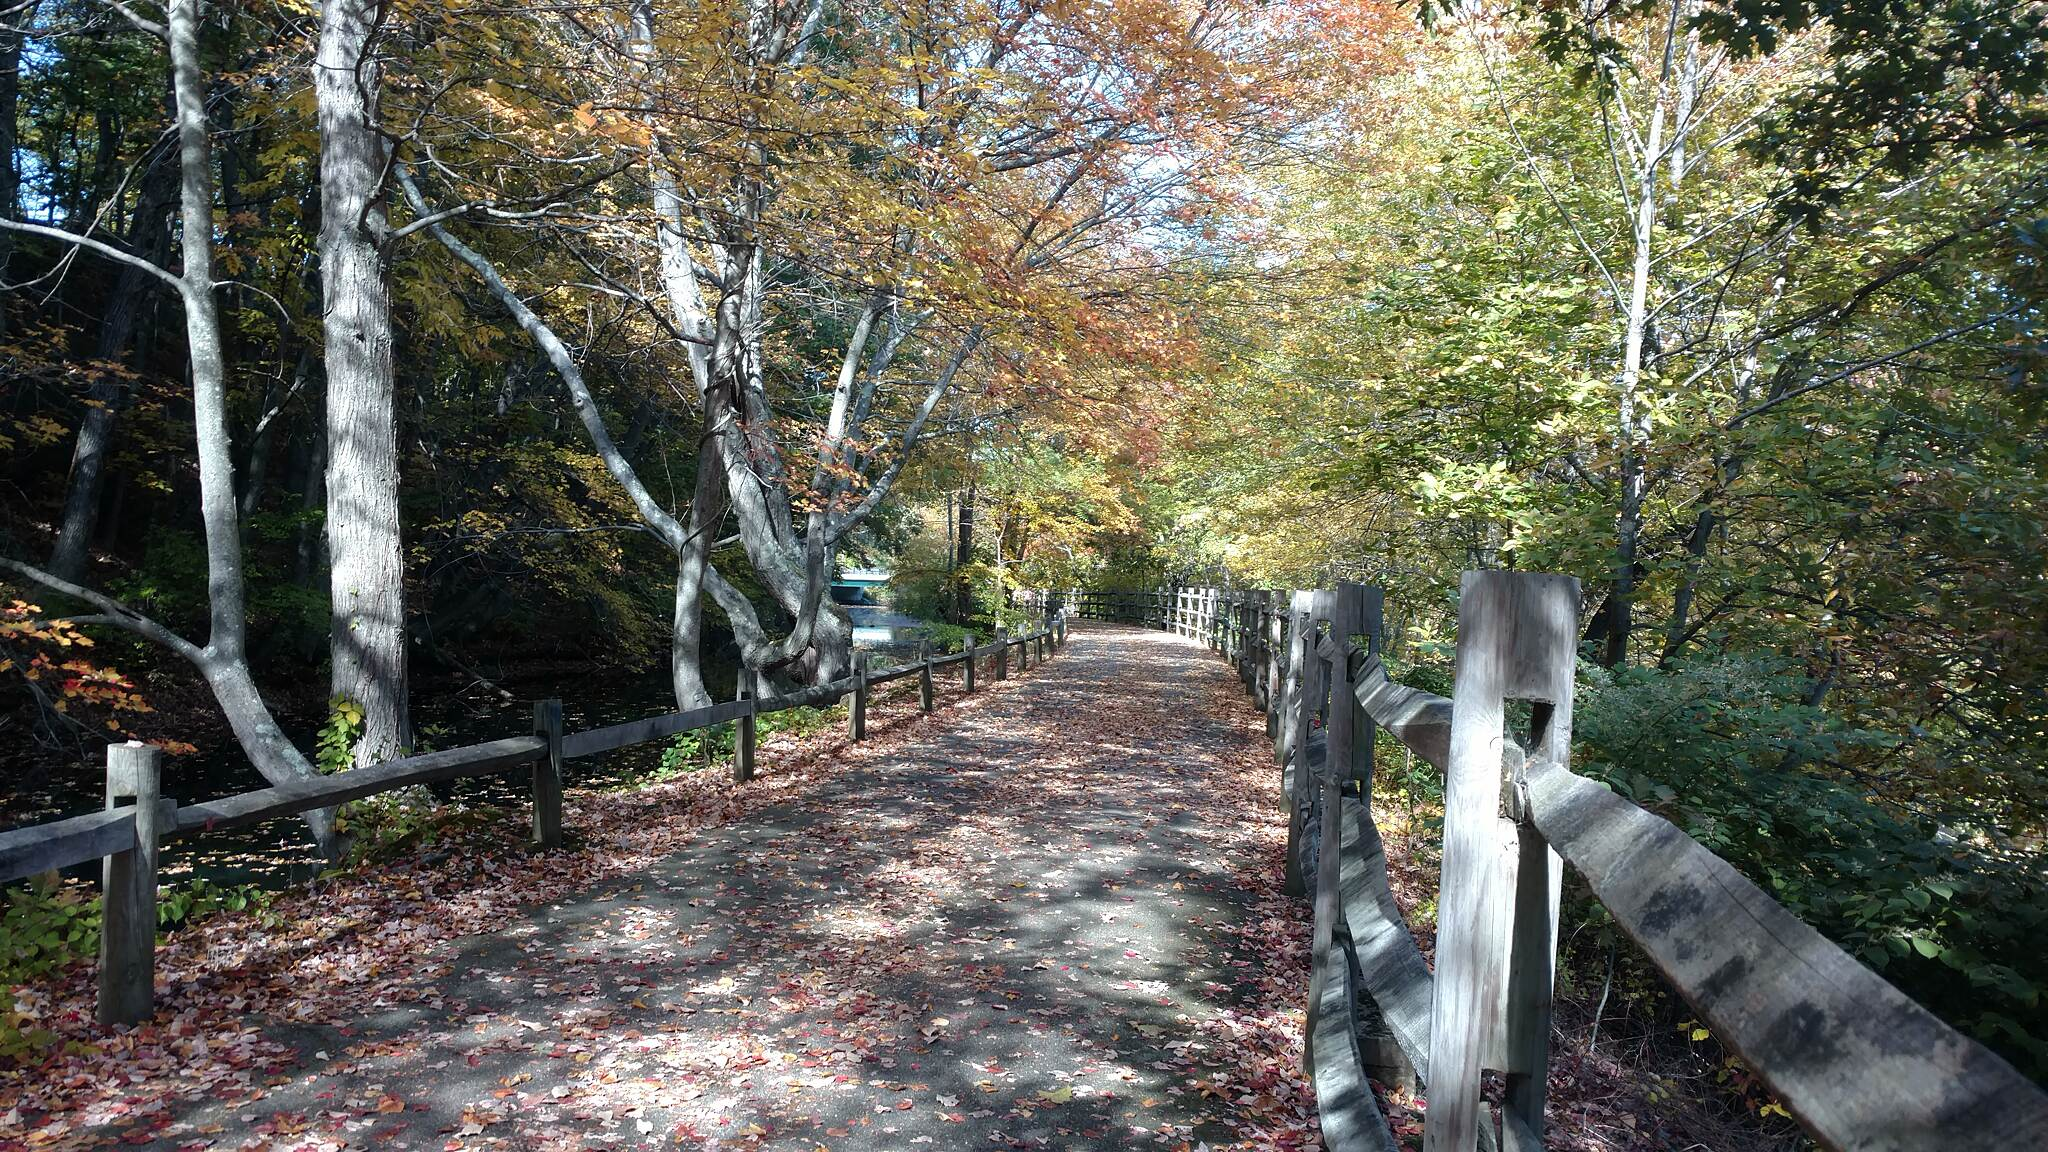 Blackstone River Greenway SouthOfMartinSt Autumn 2016!